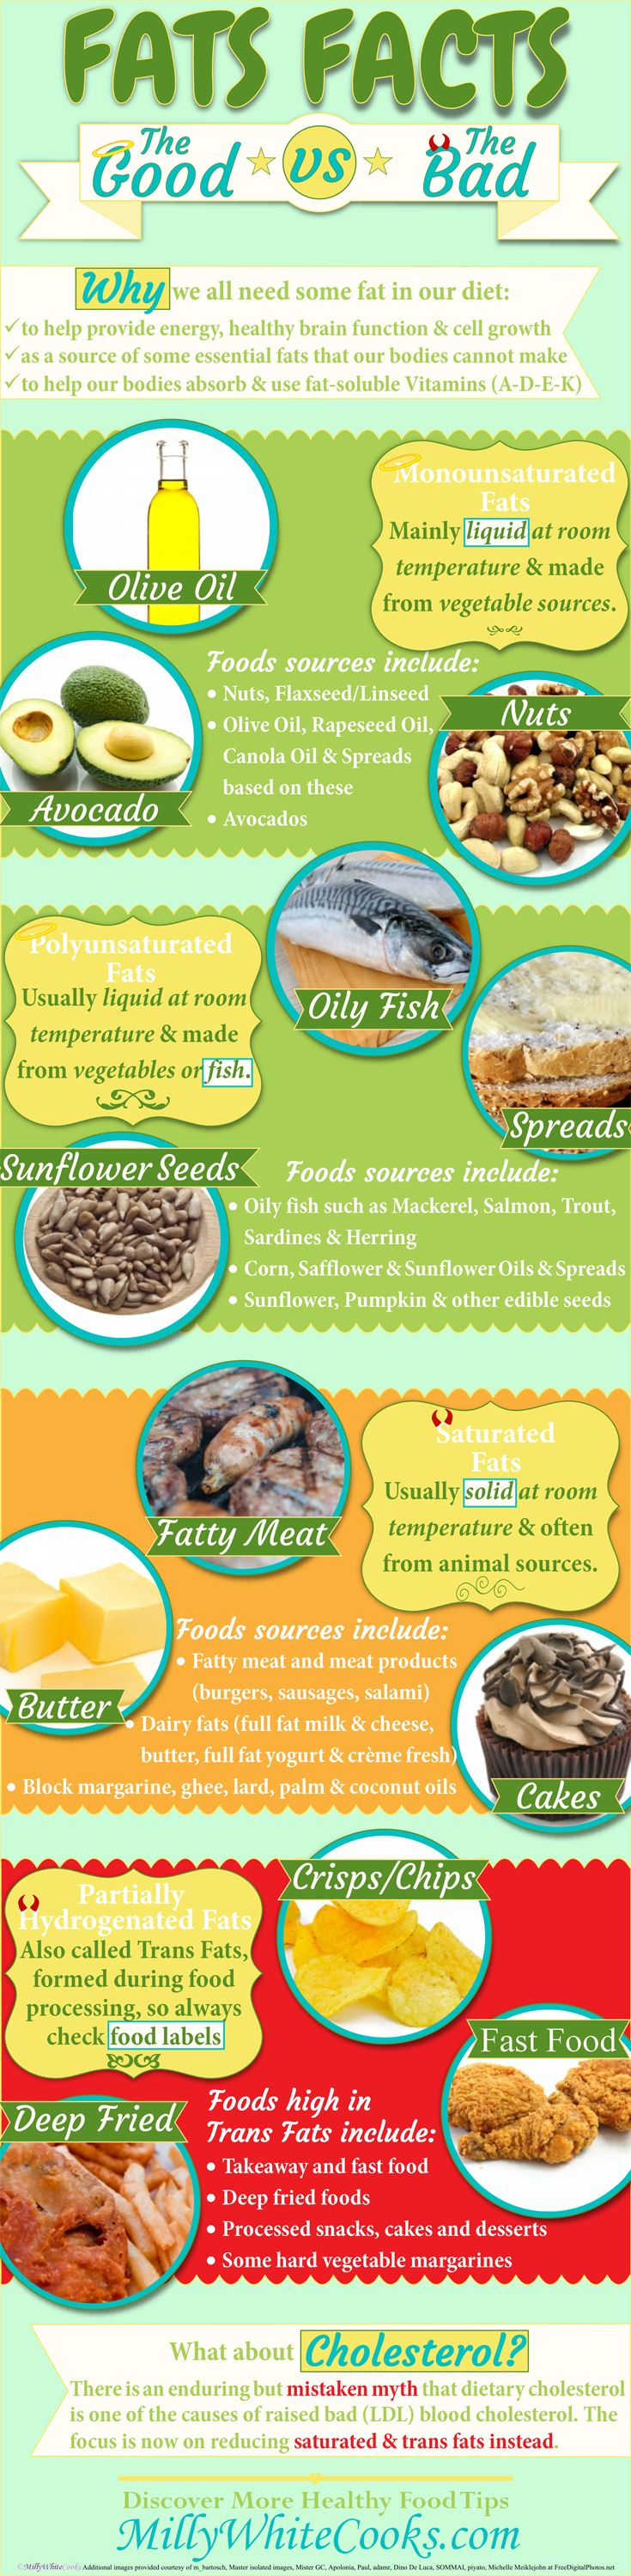 Discover the Facts About Fats: Good vs Bad & Why We All Need Fat in our Diet (Infographic). Read more http://www.millywhitecooks.com/2015/09/the-facts-about-fats-good-unsaturated-vs-bad-saturated-trans.html